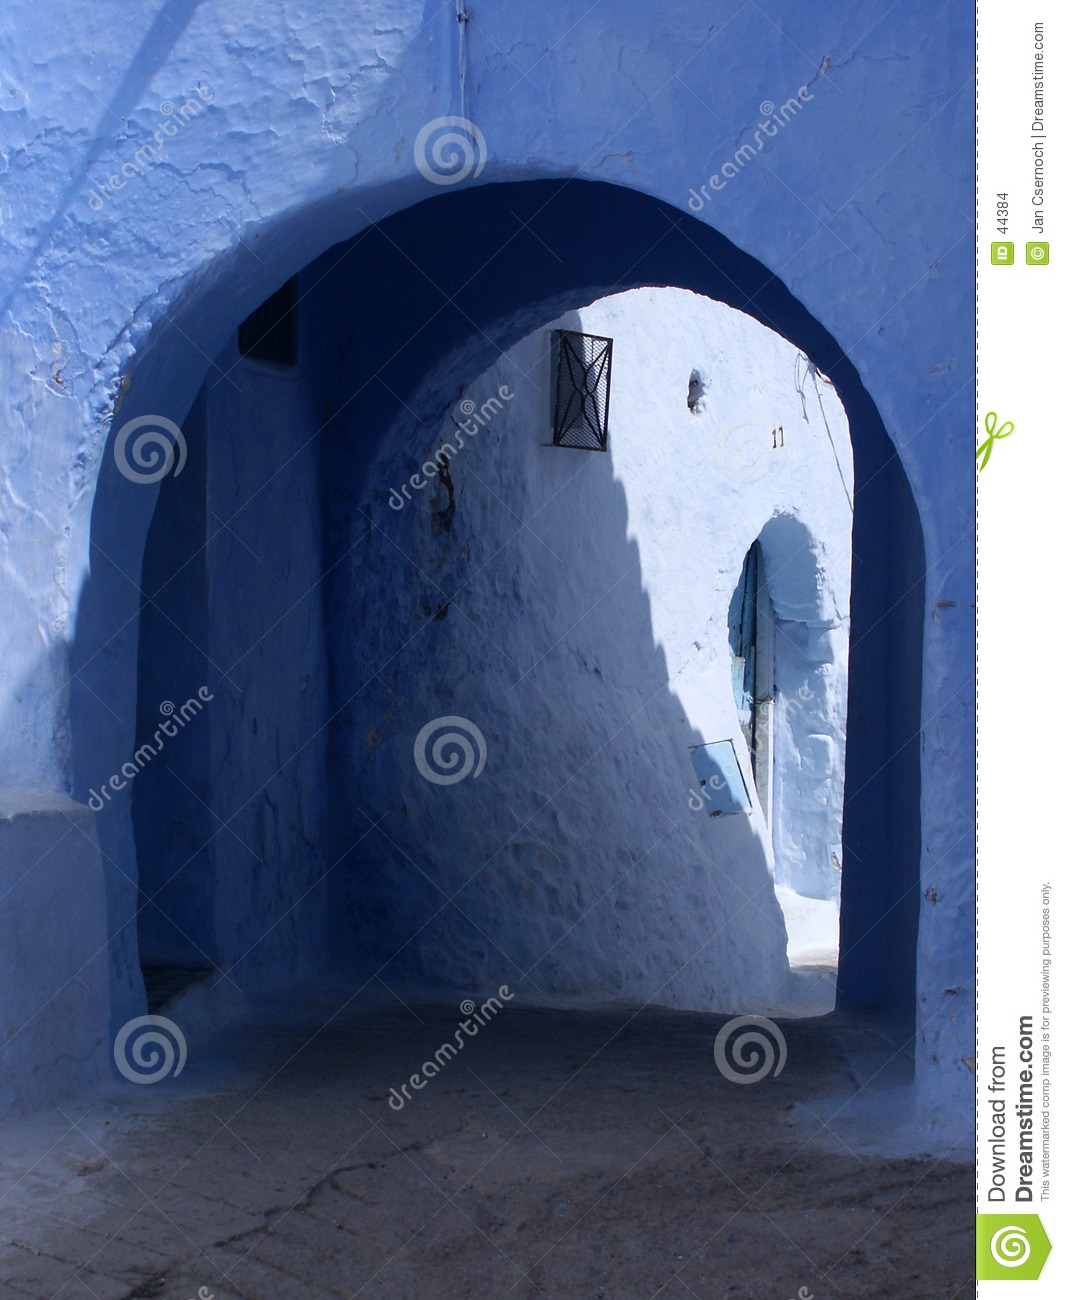 Blue alley with passage